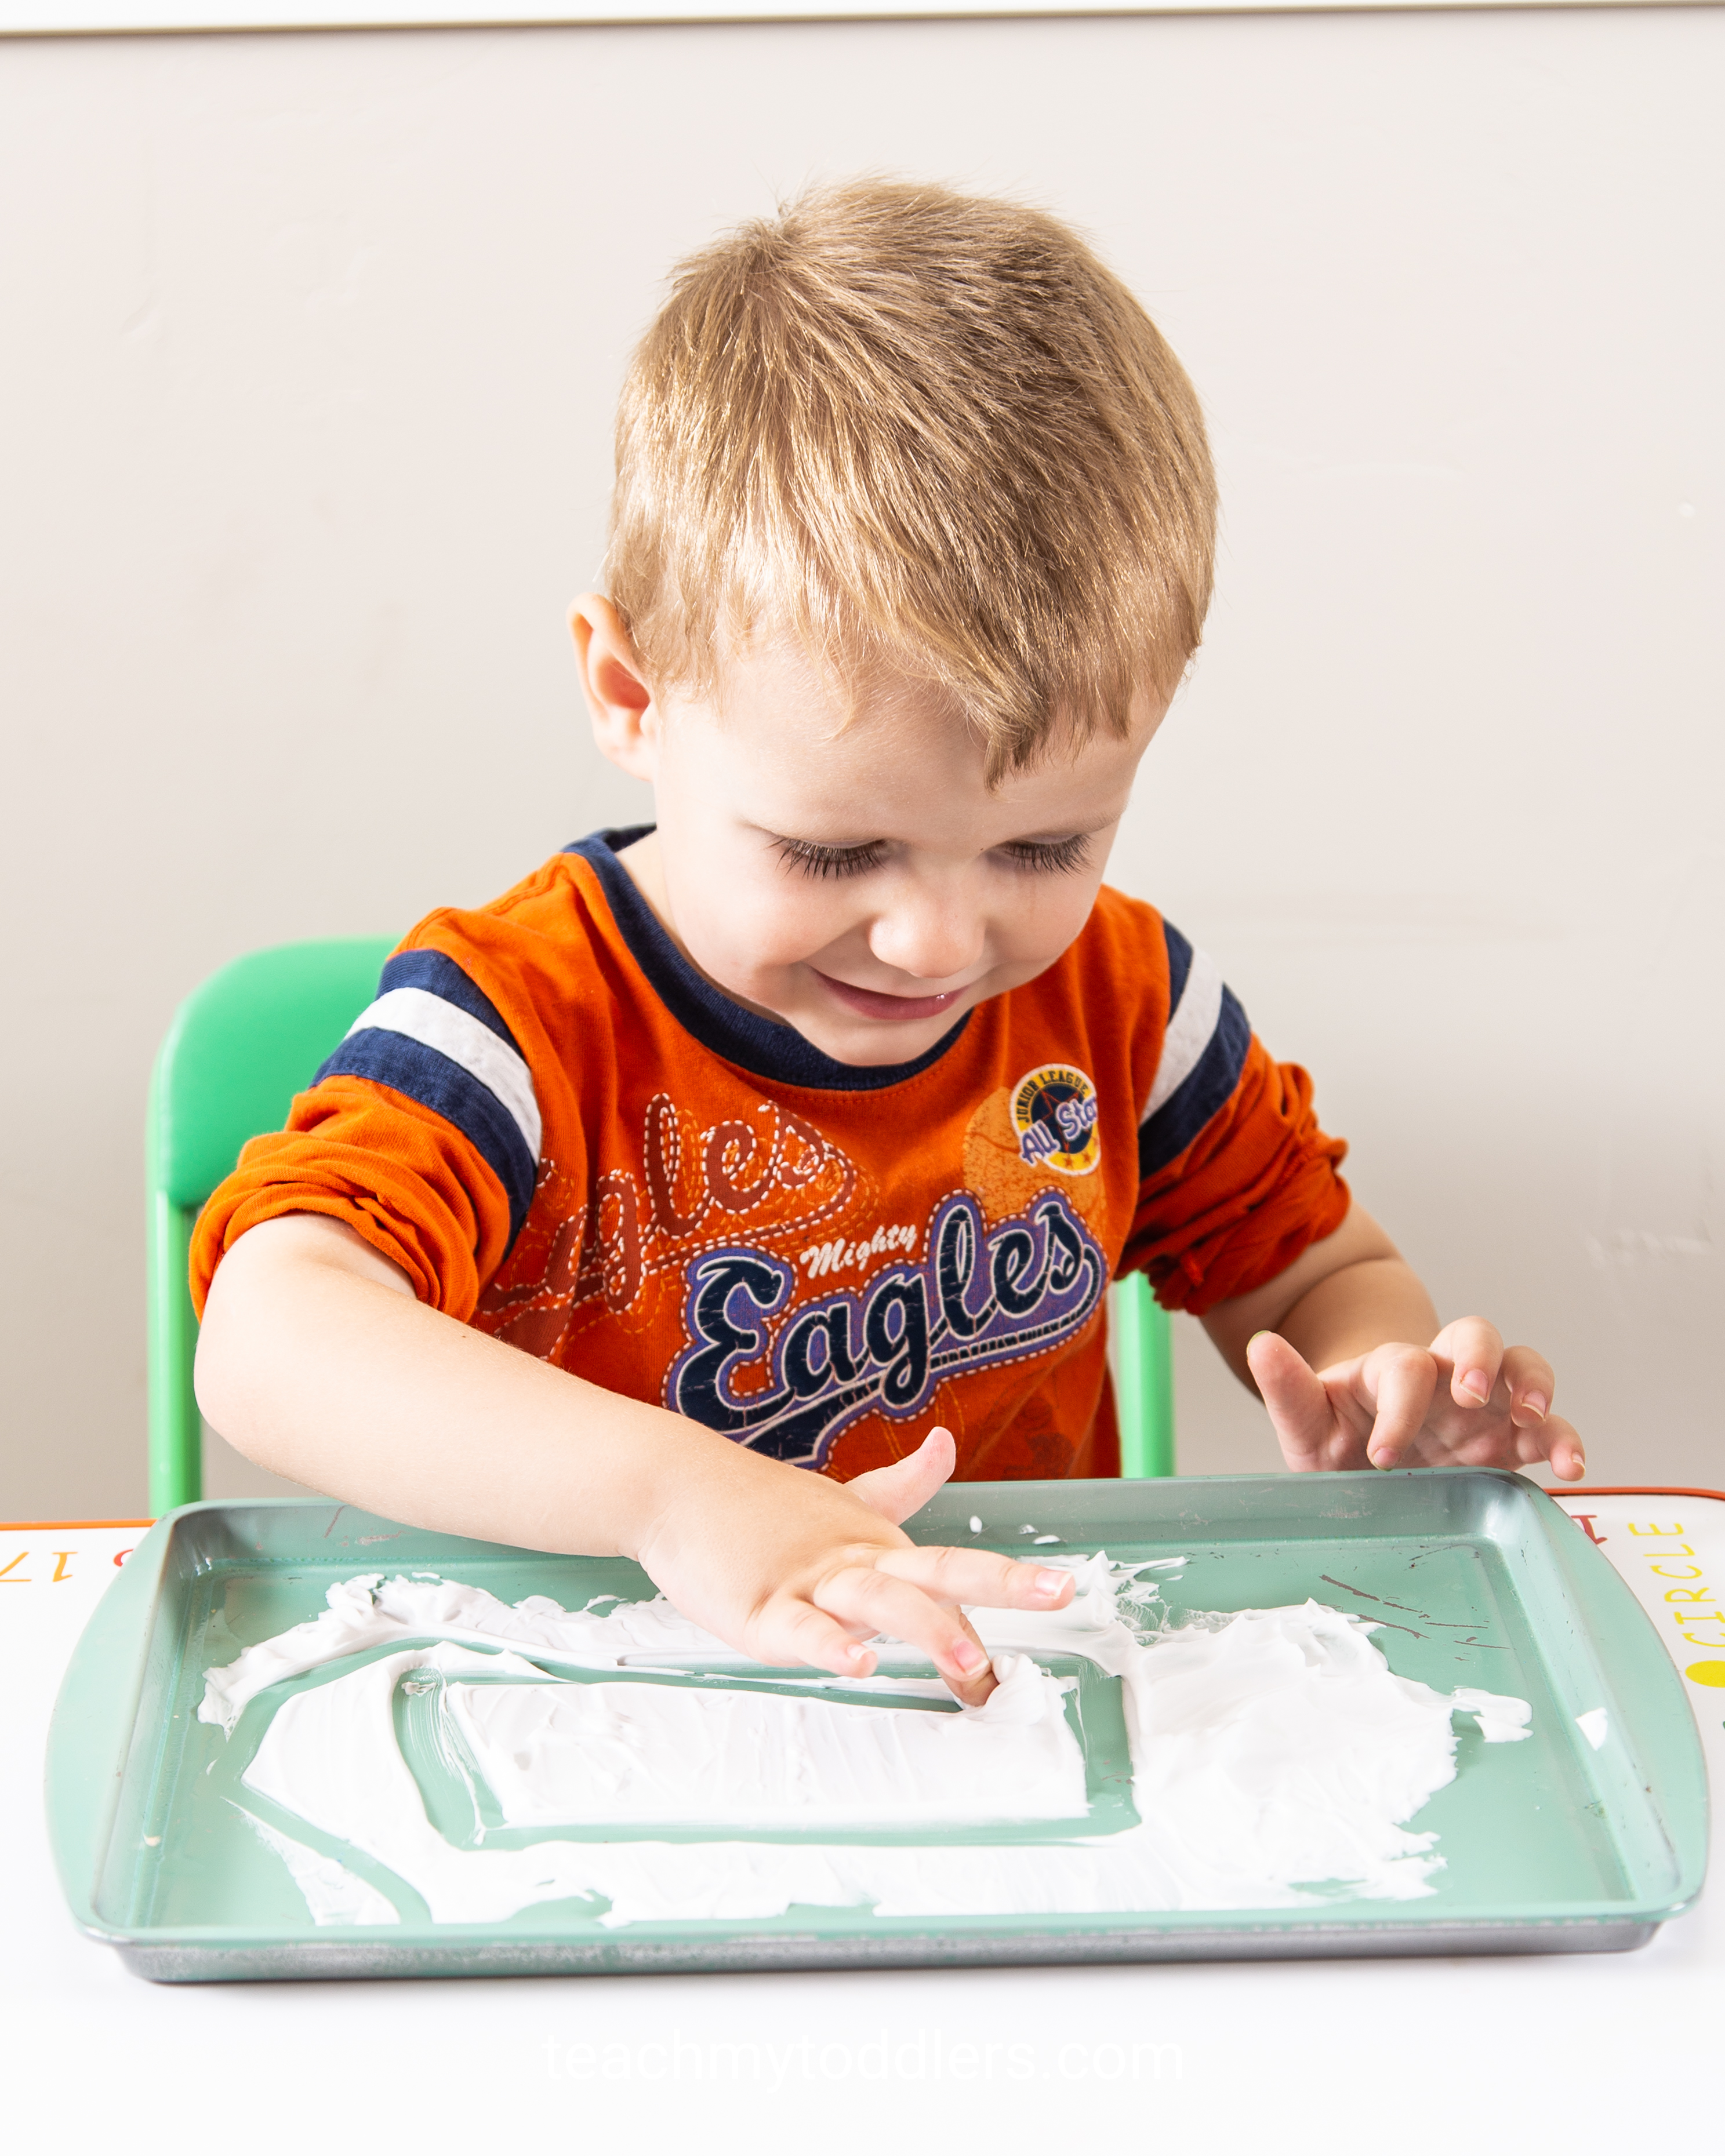 Find out how to use these rectangle trays to teach toddlers shapes